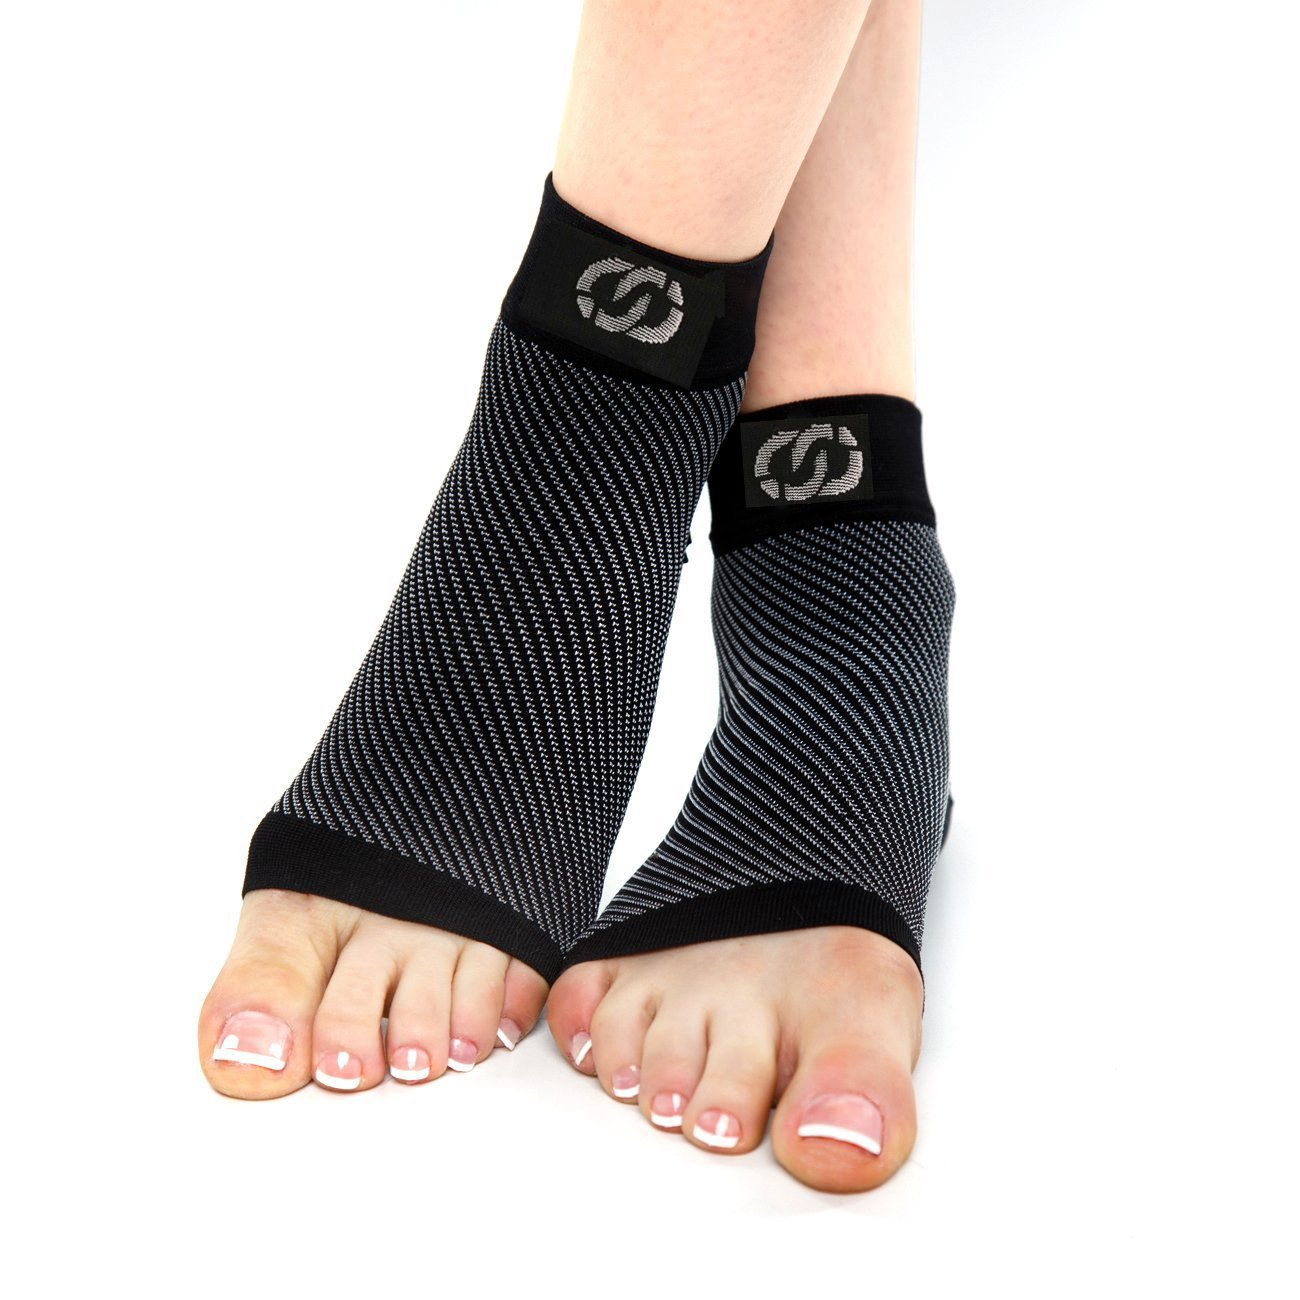 Compressions Plantar Fasciitis Socks (1 Pair) Foot Sleeves with Arch & Heel Support Treatment for Men & Women - Best to Brace Insoles for Relief (Small) by Compressions (Image #3)